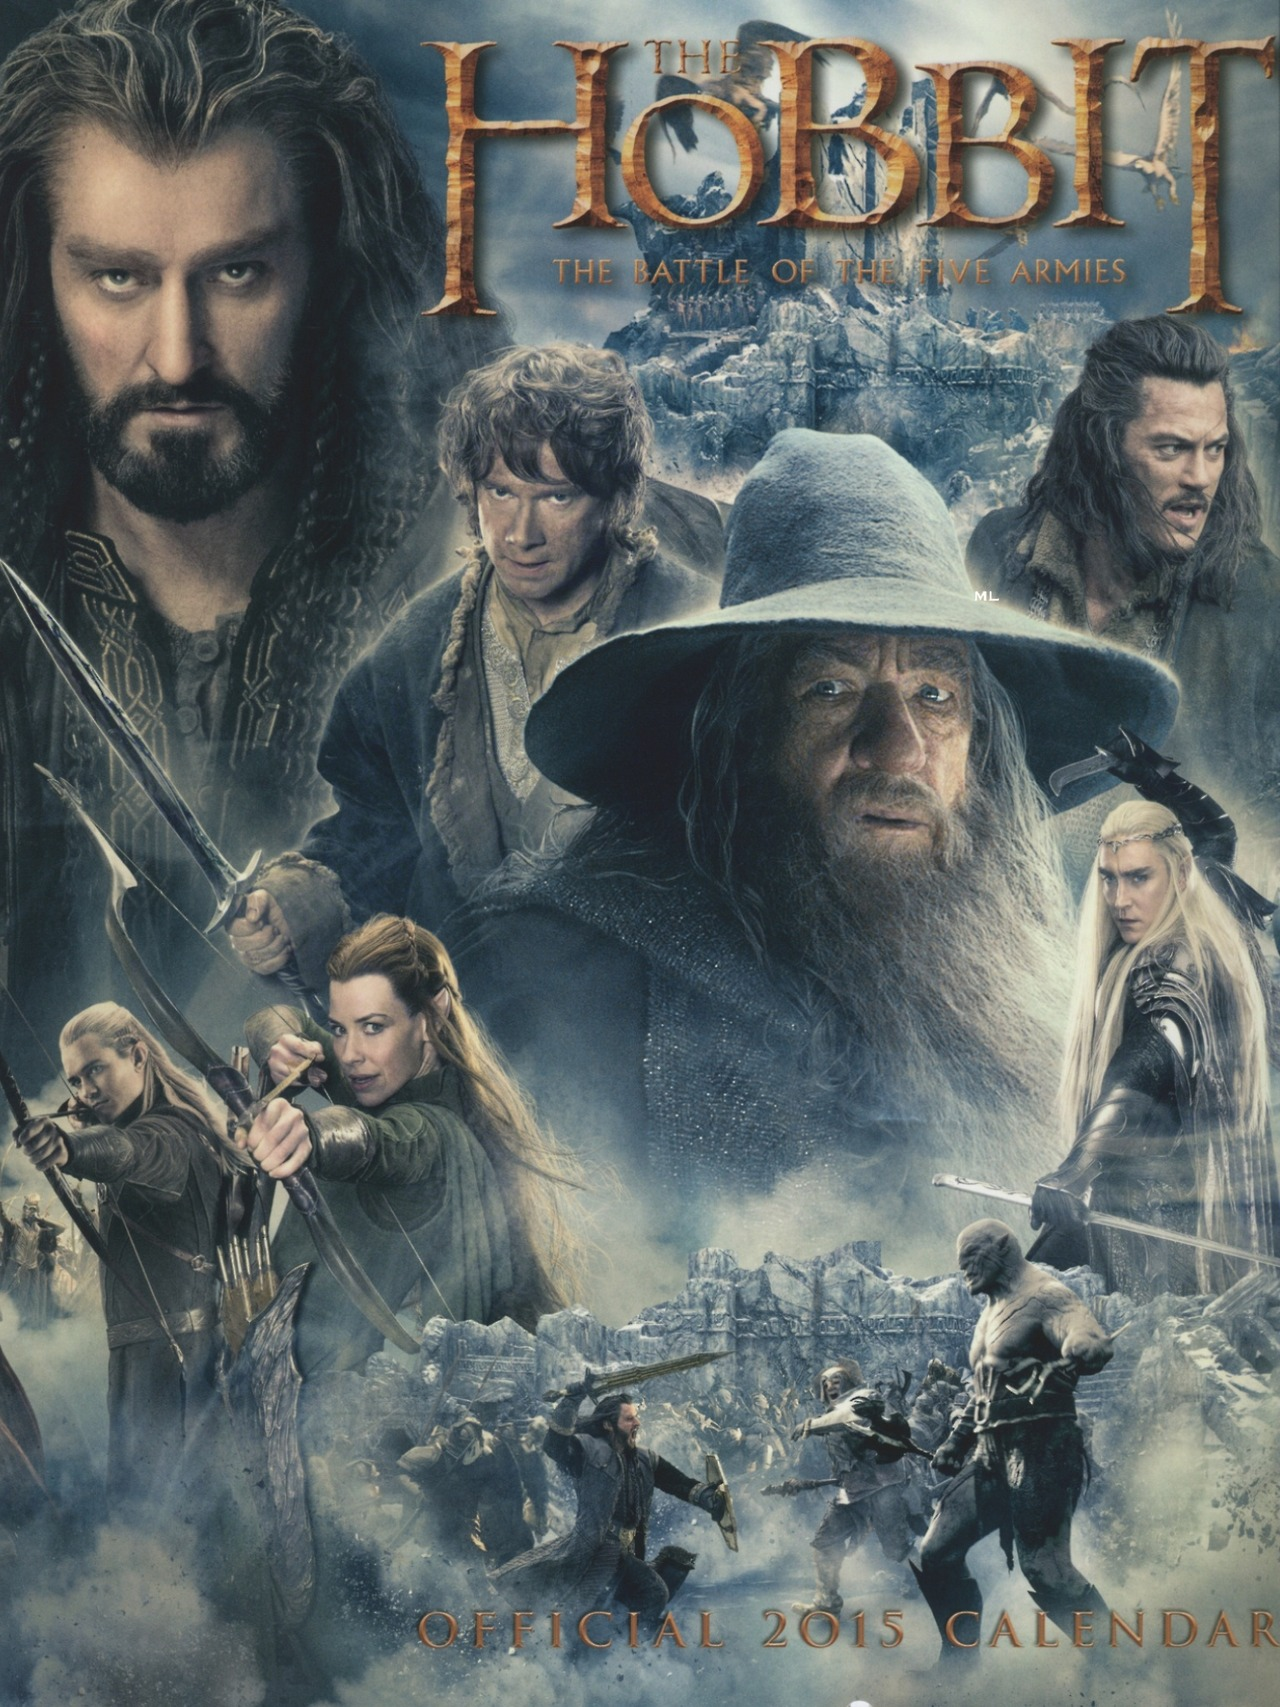 The Hobbit The Battle Of The Five Armies 2014 Random Photo 38562819 Fanpop